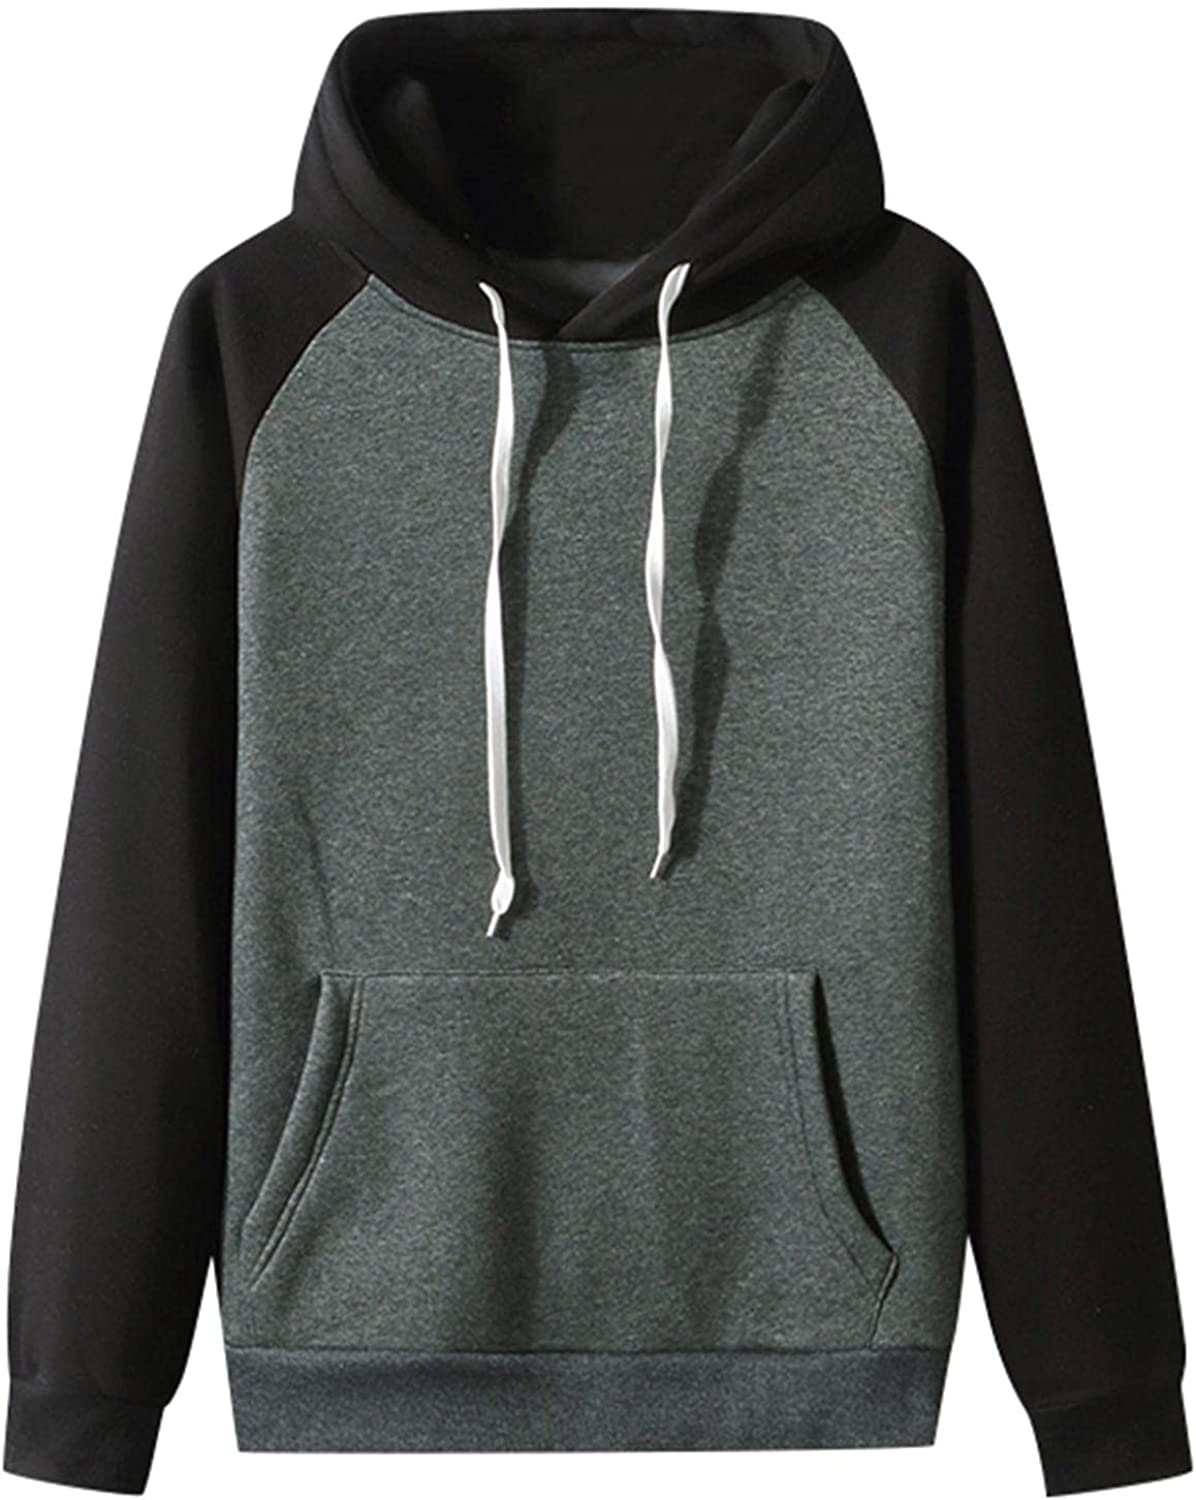 Huangse Men's Autumn Slim Fit Hooded Sweatshirt Casual Patchwork Pullover with Hood Long Sleeve Sweatershirts Track Tops